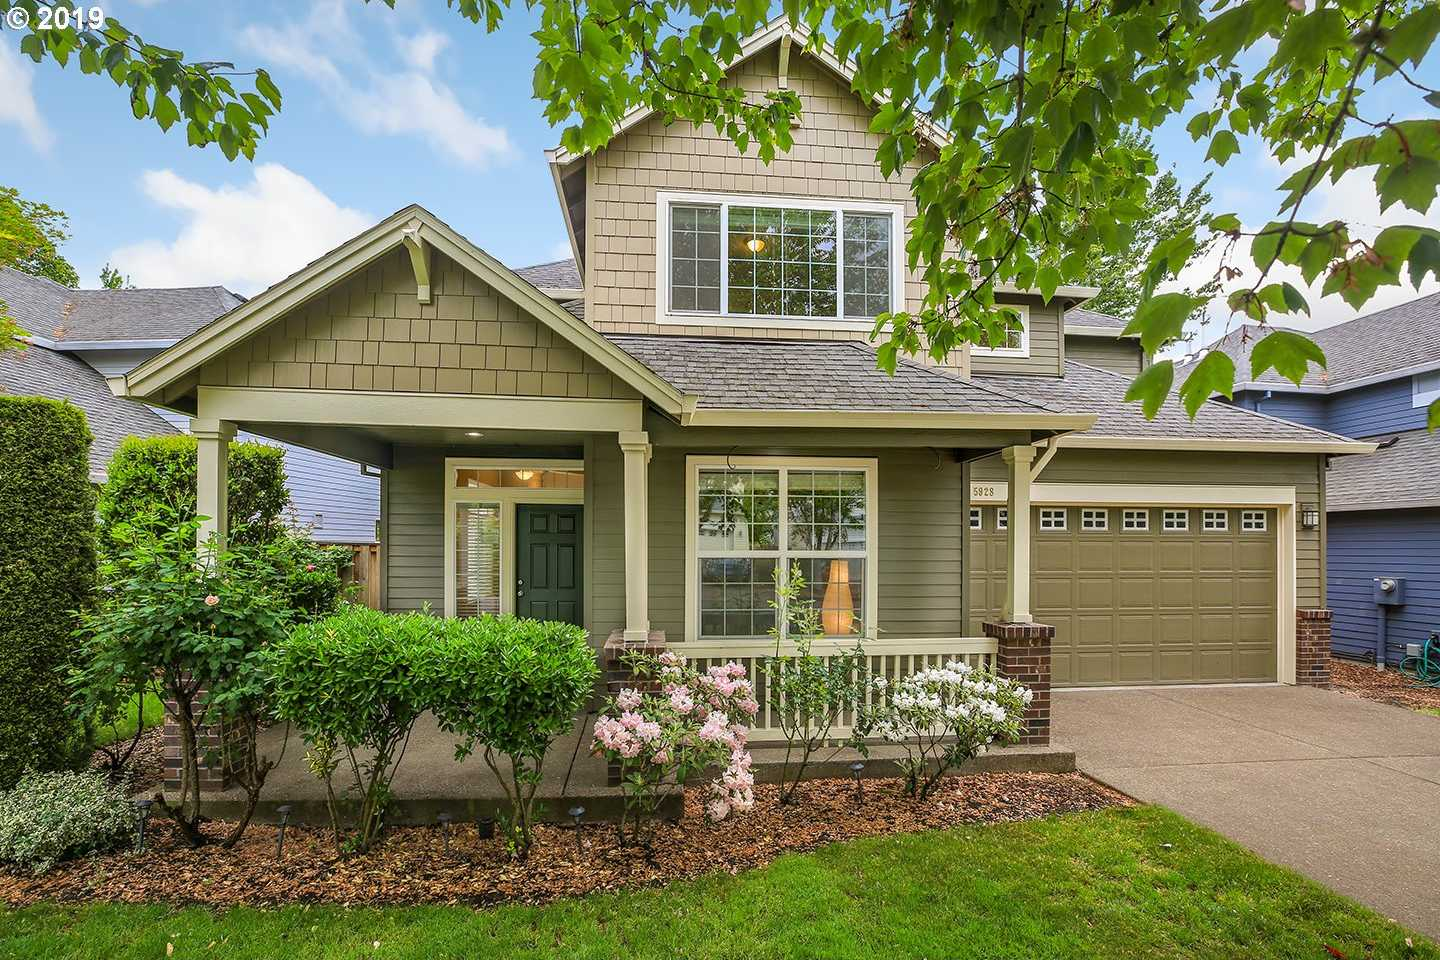 $524,900 - 5Br/3Ba -  for Sale in Hillsboro